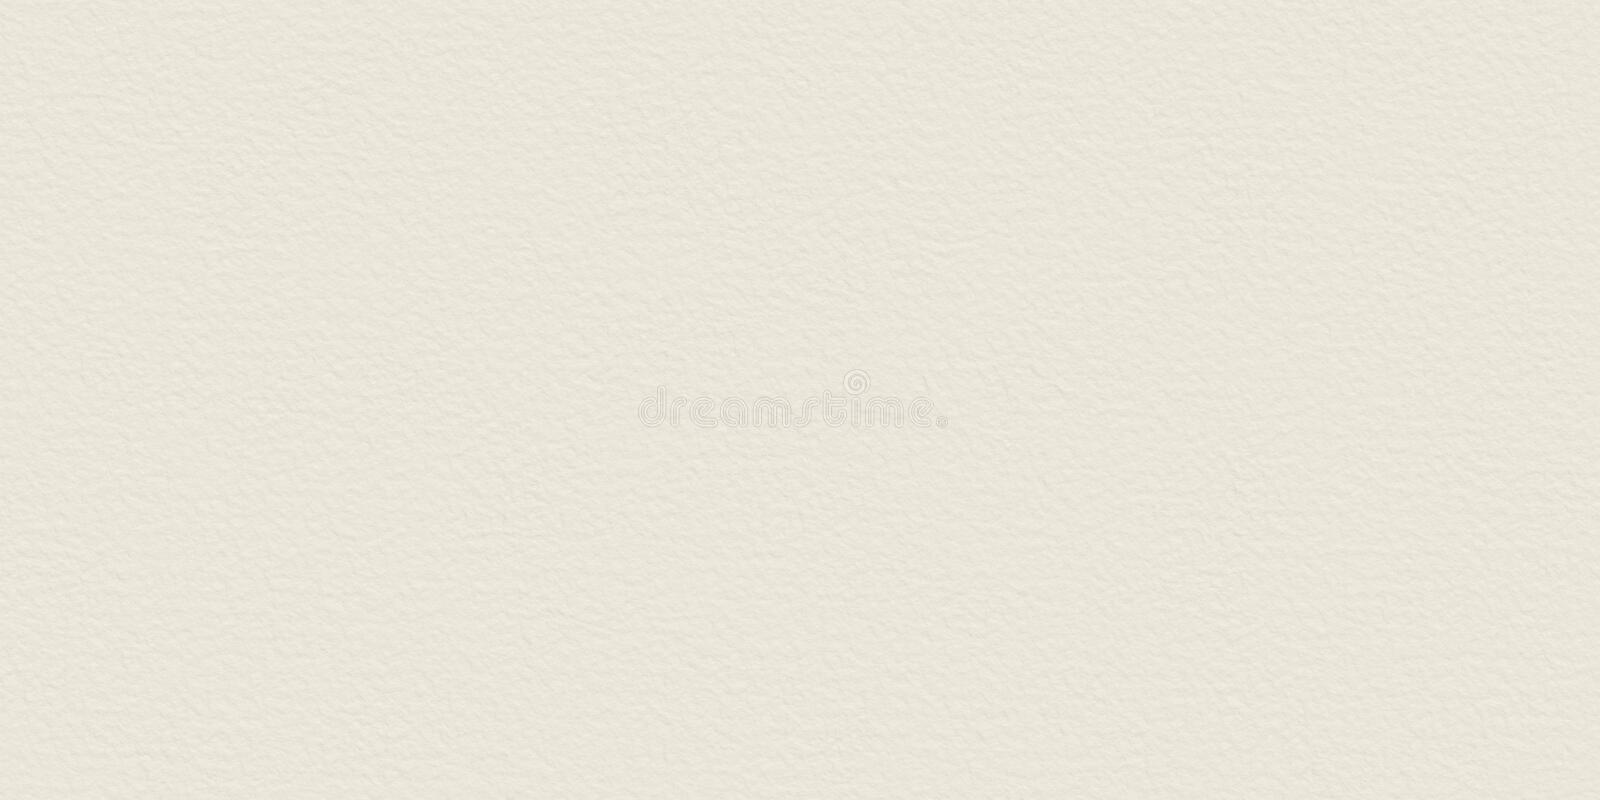 Watercolor paper seamless texture royalty free stock photos